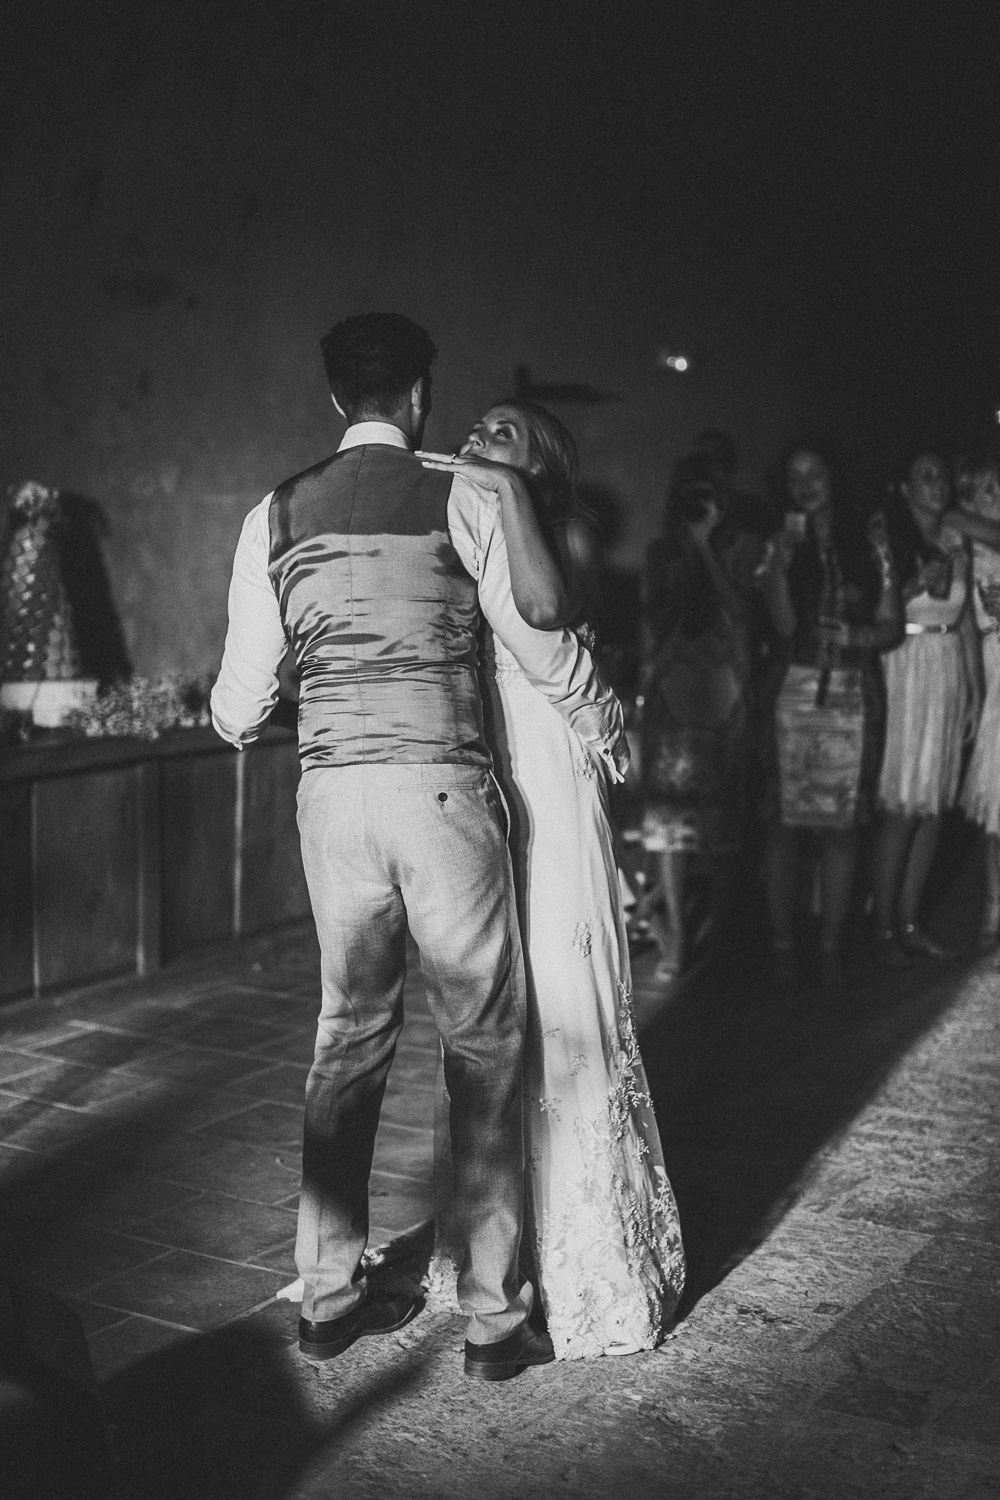 2428_lifestories_wedding_photograohy_france_steph-and-adam_IMG_4767.jpg